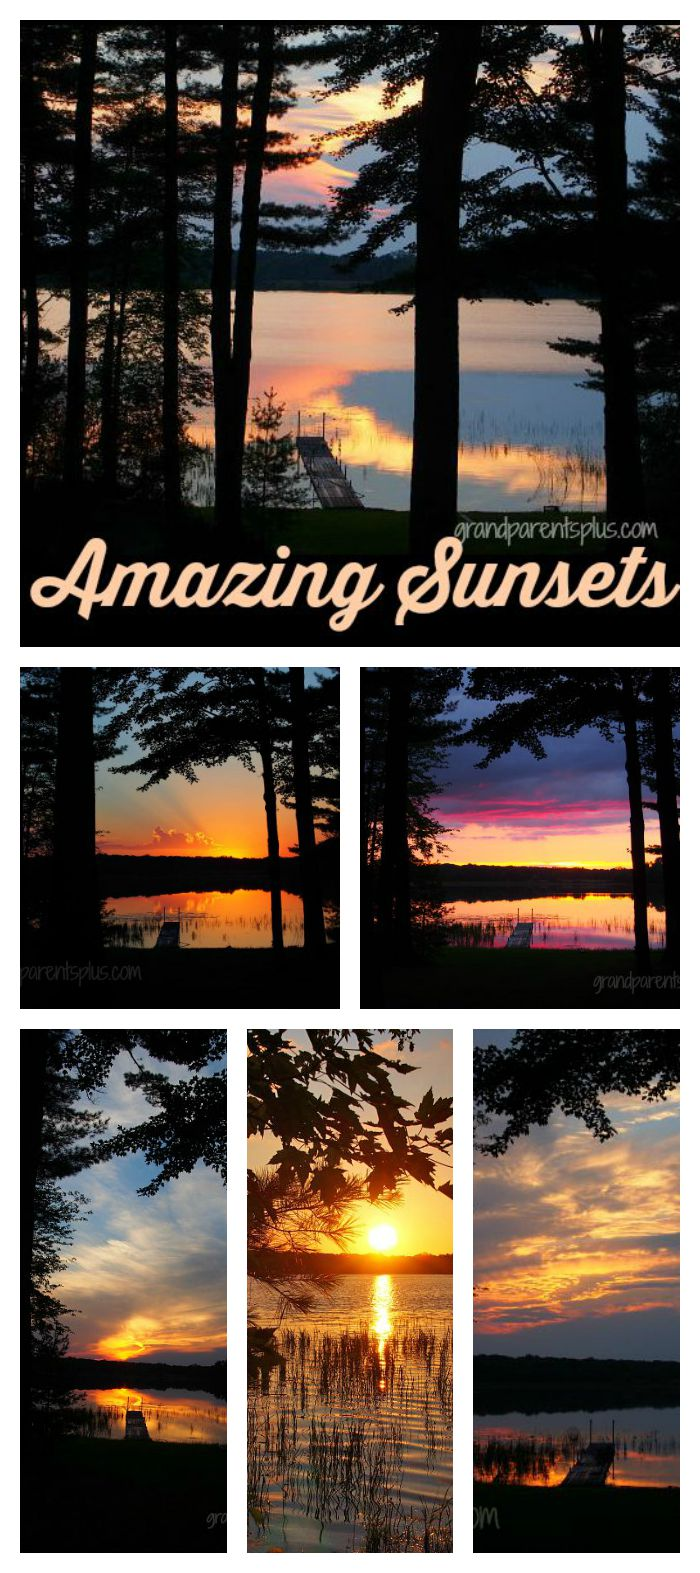 Amazing Sunsets grandparentsplus.com